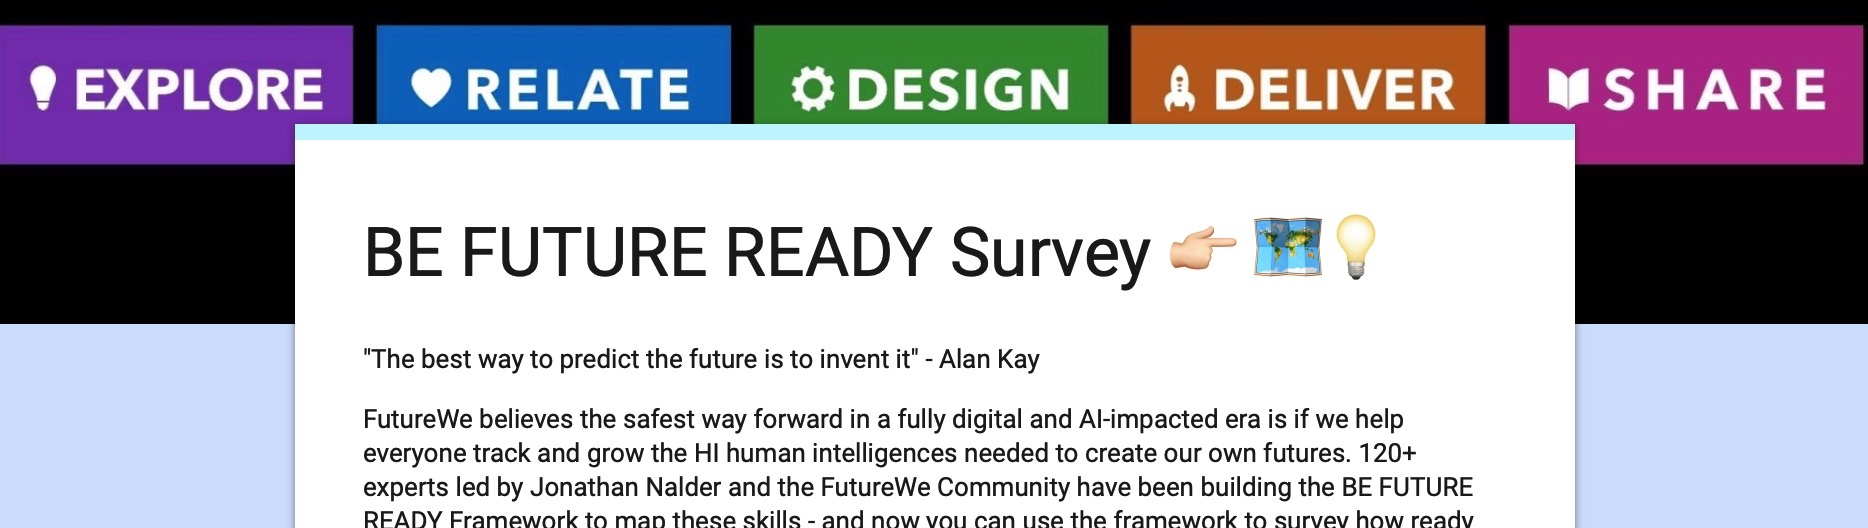 Be Future Ready Survey -